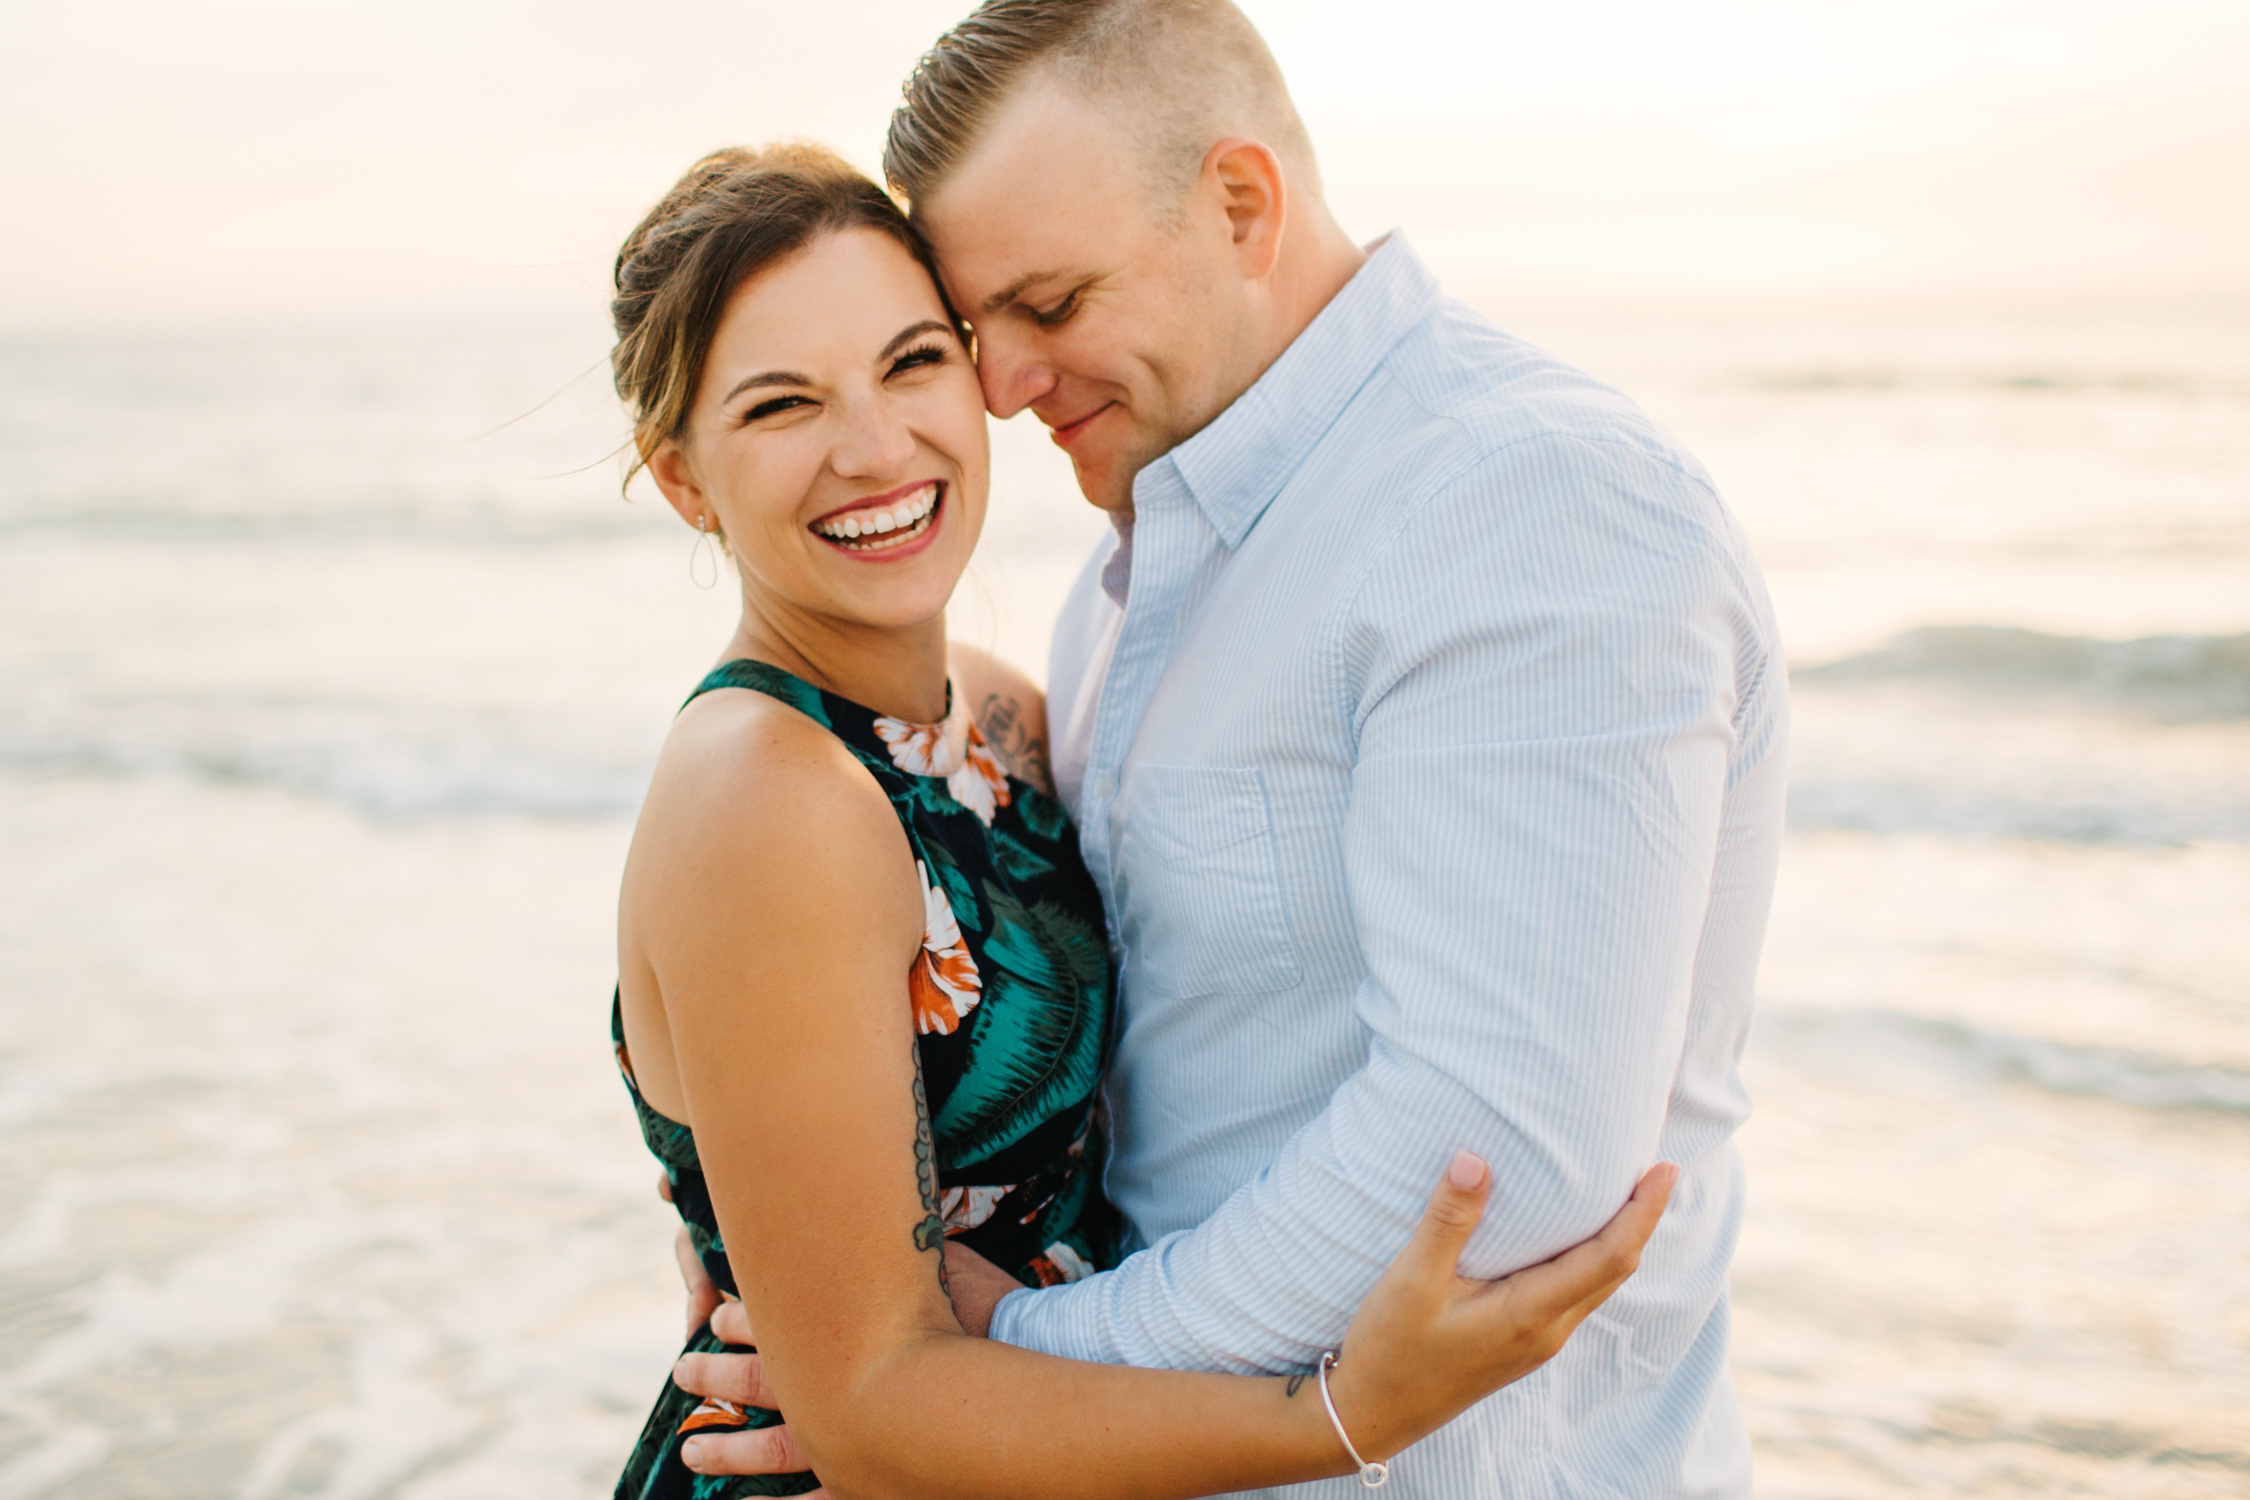 tampa-orlando-engagement-photos-16